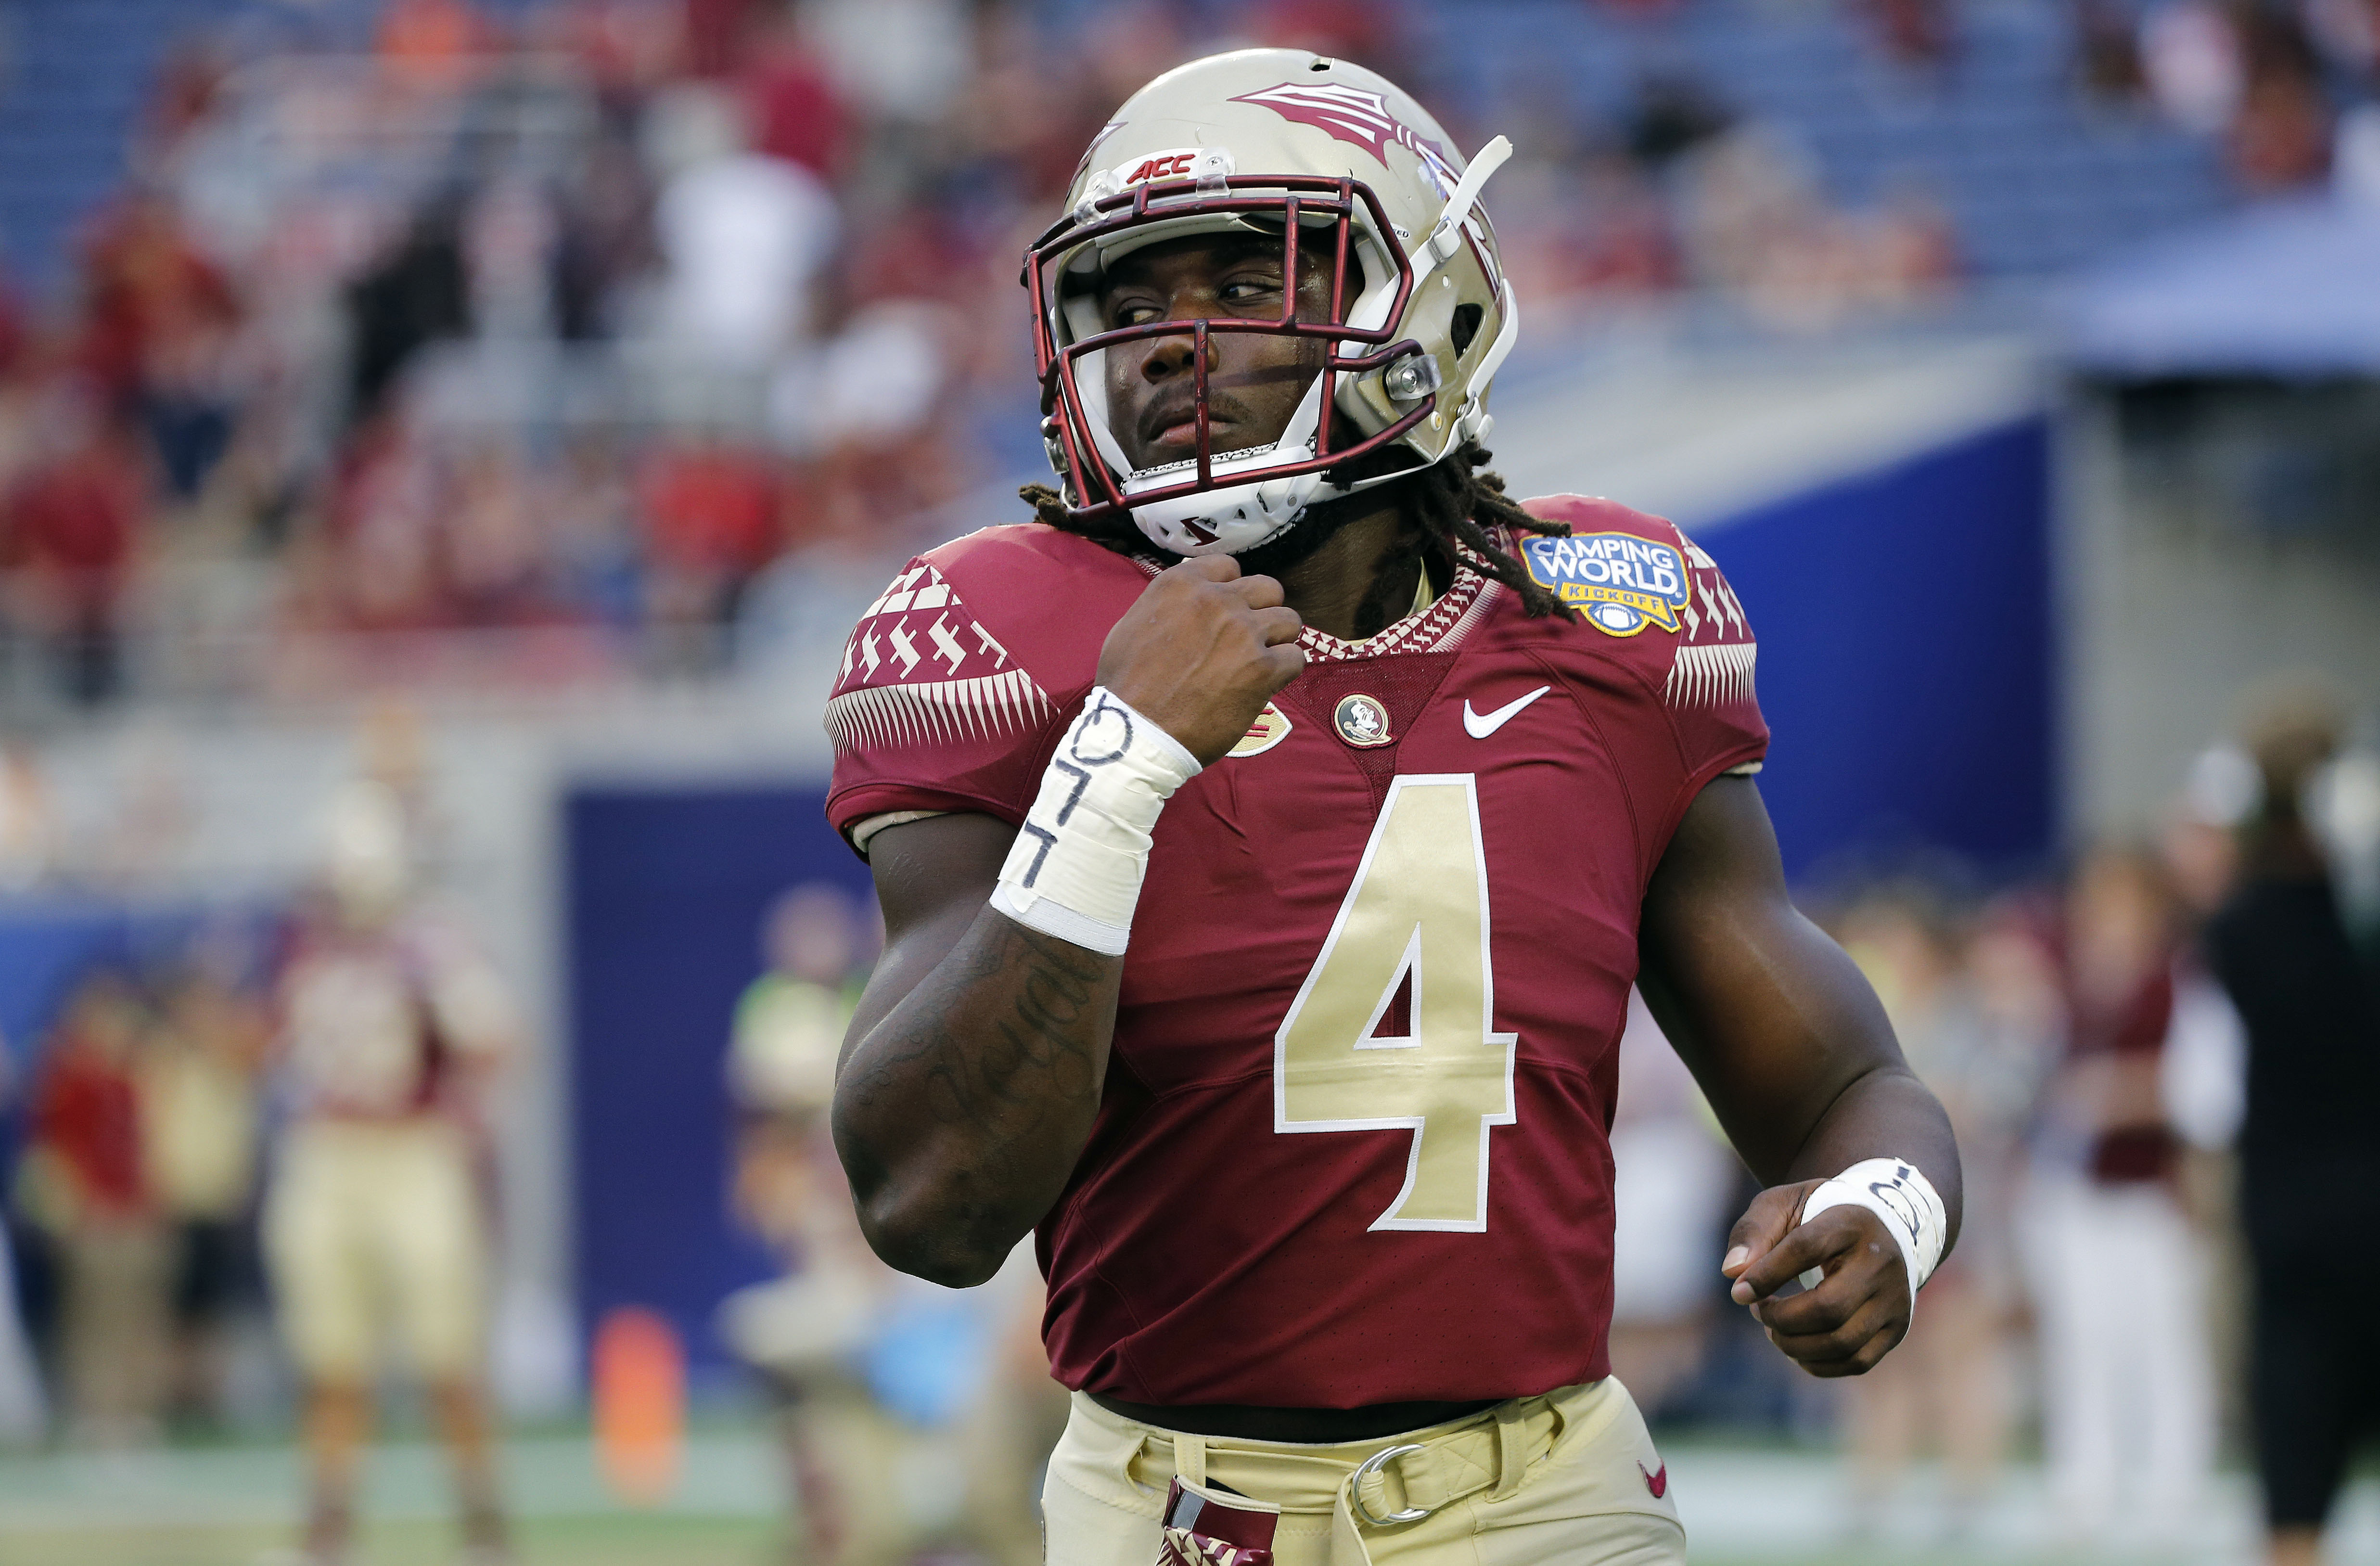 9522419-ncaa-football-mississippi-at-florida-state